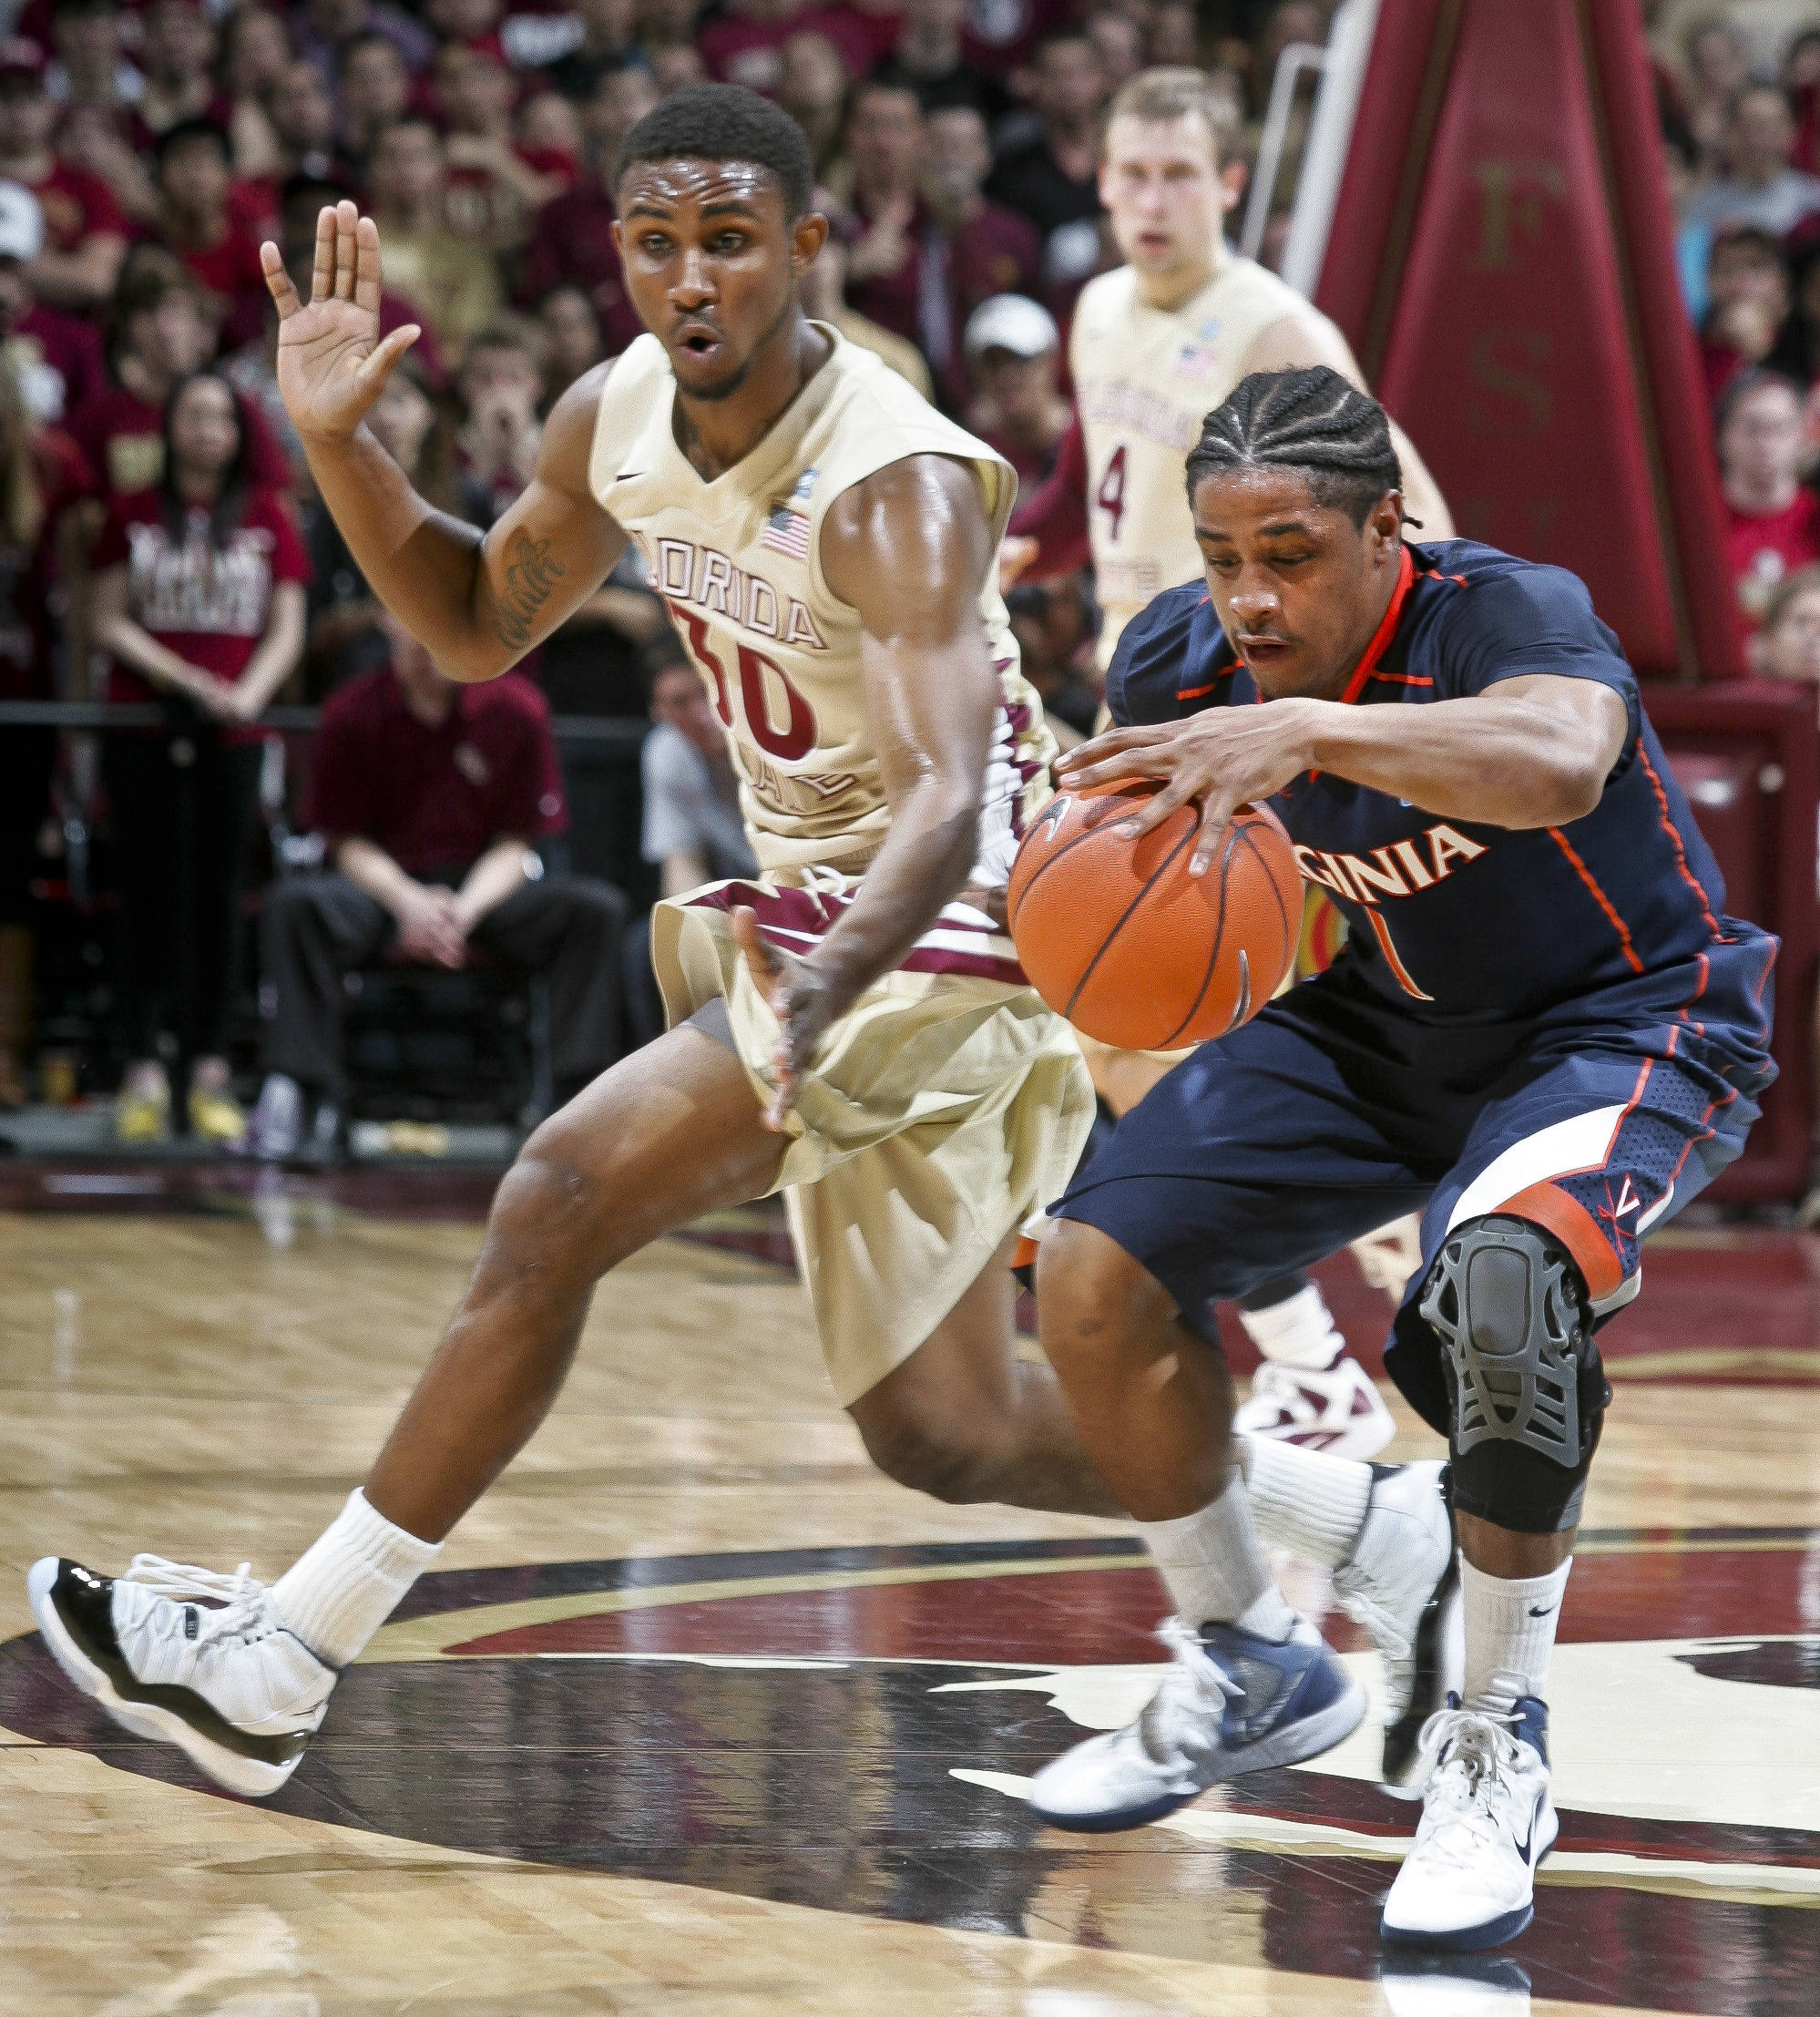 Florida State's Ian Miller (30) goes for a steal on Virginia's Jontel Evans (1) in the first half of an NCAA college basketball game on Saturday, Feb. 4, 2012, in Tallahassee, Fla. Florida State won 58-55. (AP Photo/Phil Sears)